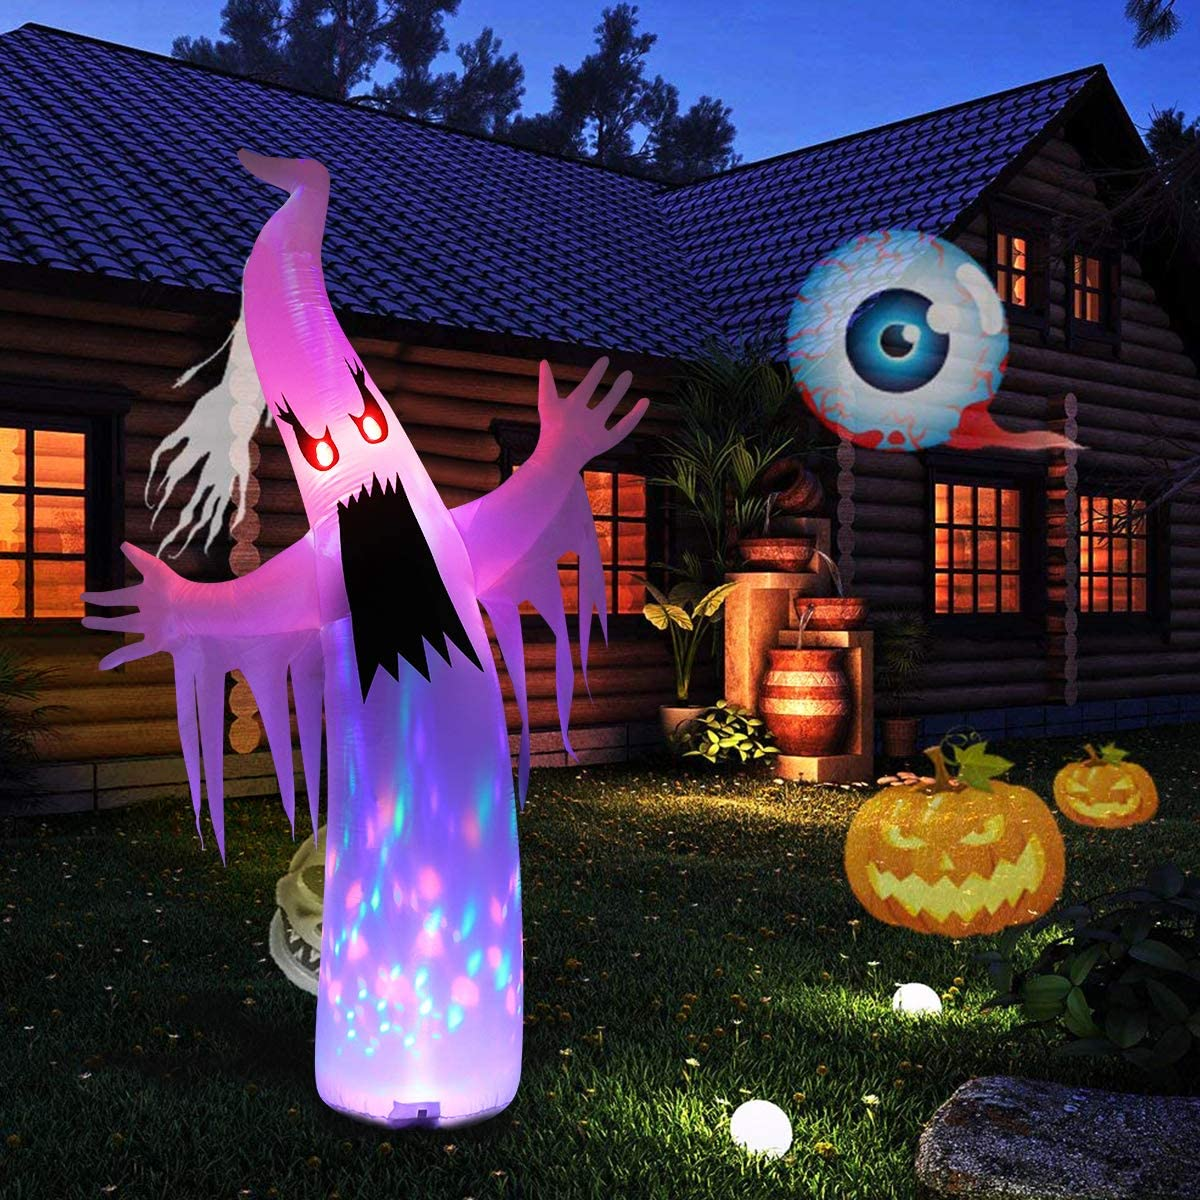 Inflatable Halloween Ghost with Build-in Colorful LED Lights for Party Holiday Halloween Decoration Outdoor Ghost Halloween